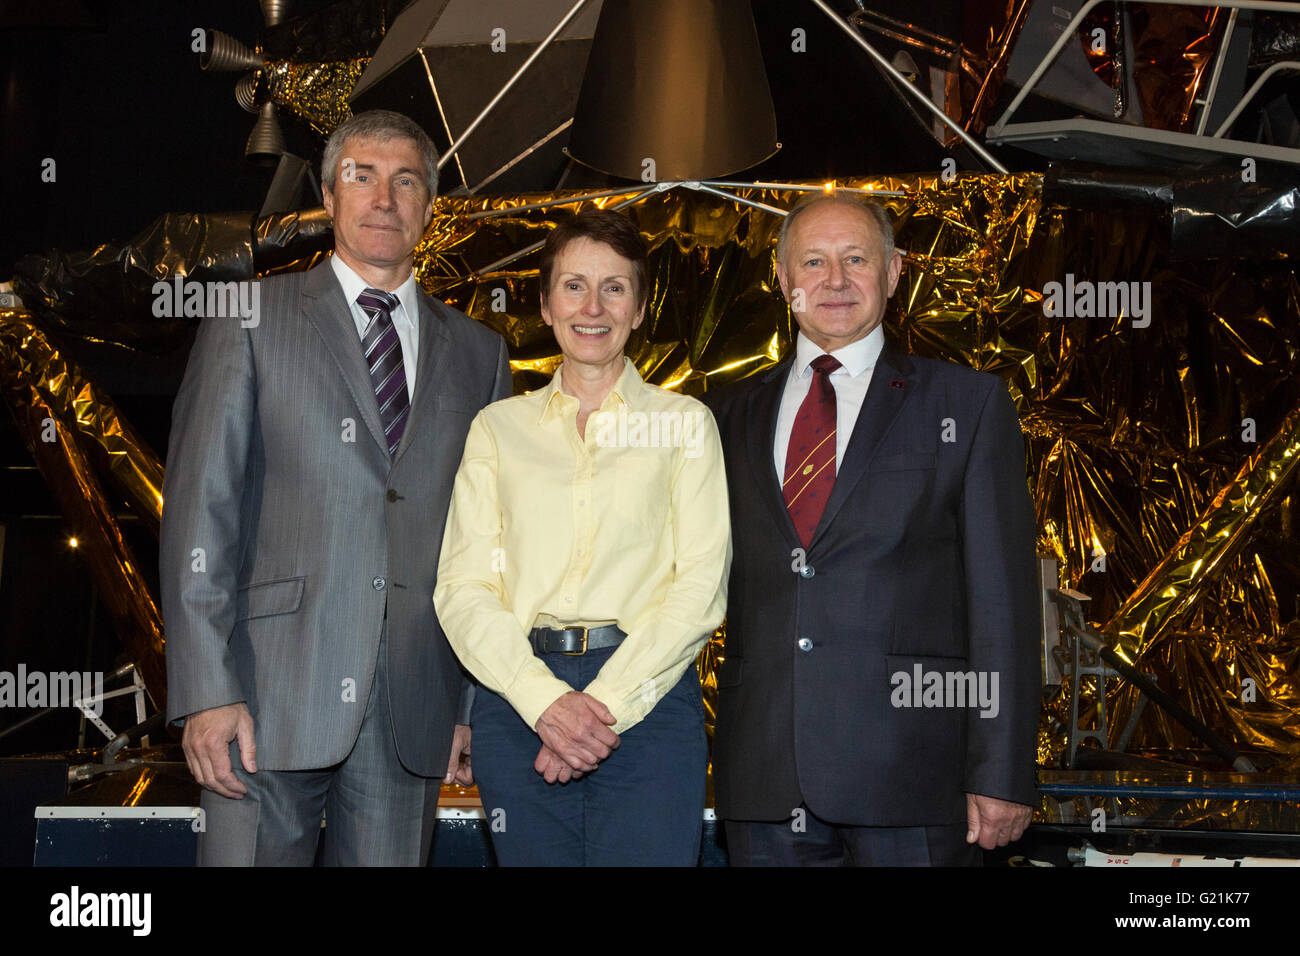 London, UK. 20 May 2016. L-R: Sergei Krikalev, Helen Sharman and Anatoli Artsebarski. Helen Sharman celebrates 25 - Stock Image